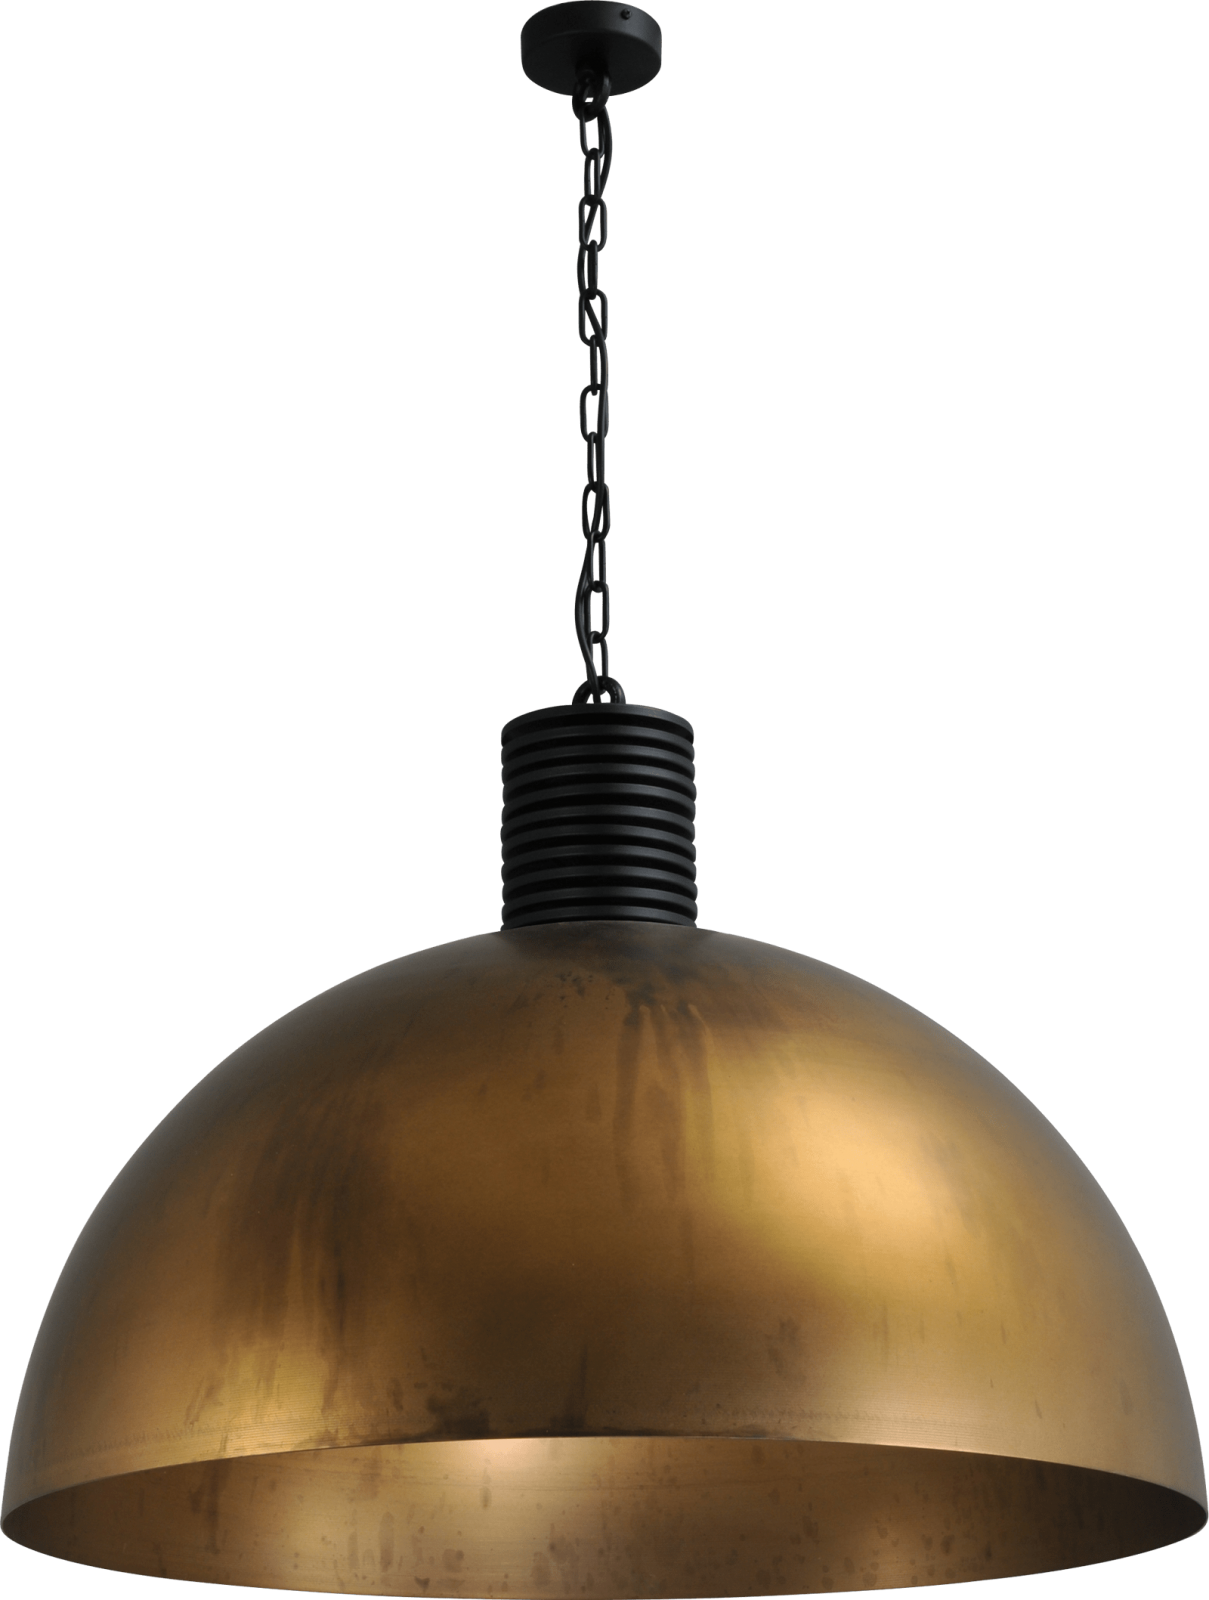 Larino Antique Brass HL LARINO D.80CM ANTIQUE BRASS EXTERIOR